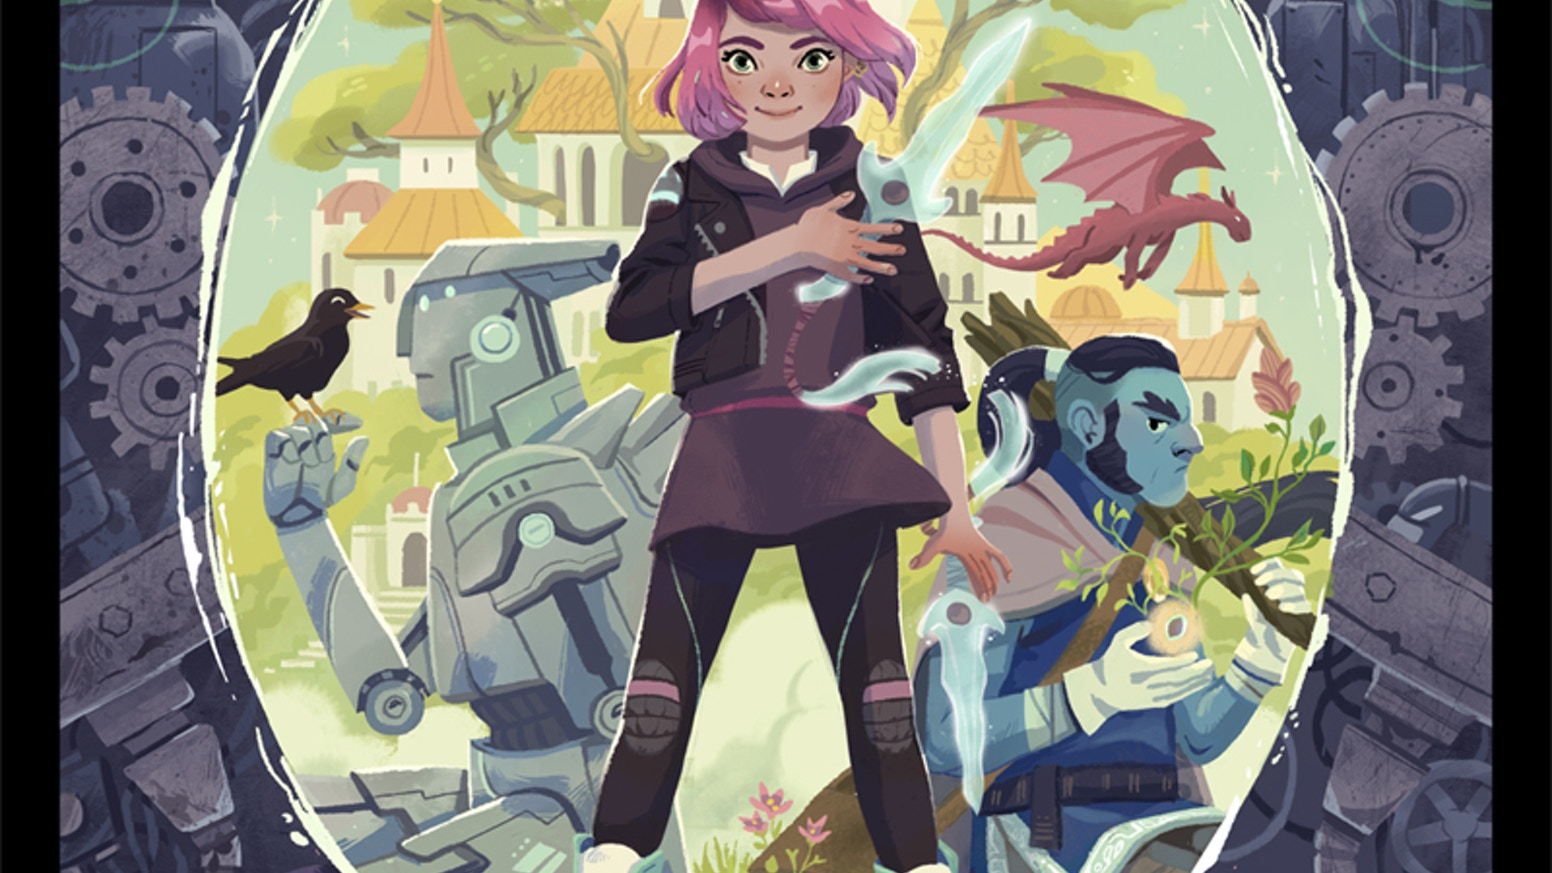 Sixth grader, Penelope Hawk embarks on an epic adventure to rescue her mom from the Nightmare King & save the dream world of Marazia.